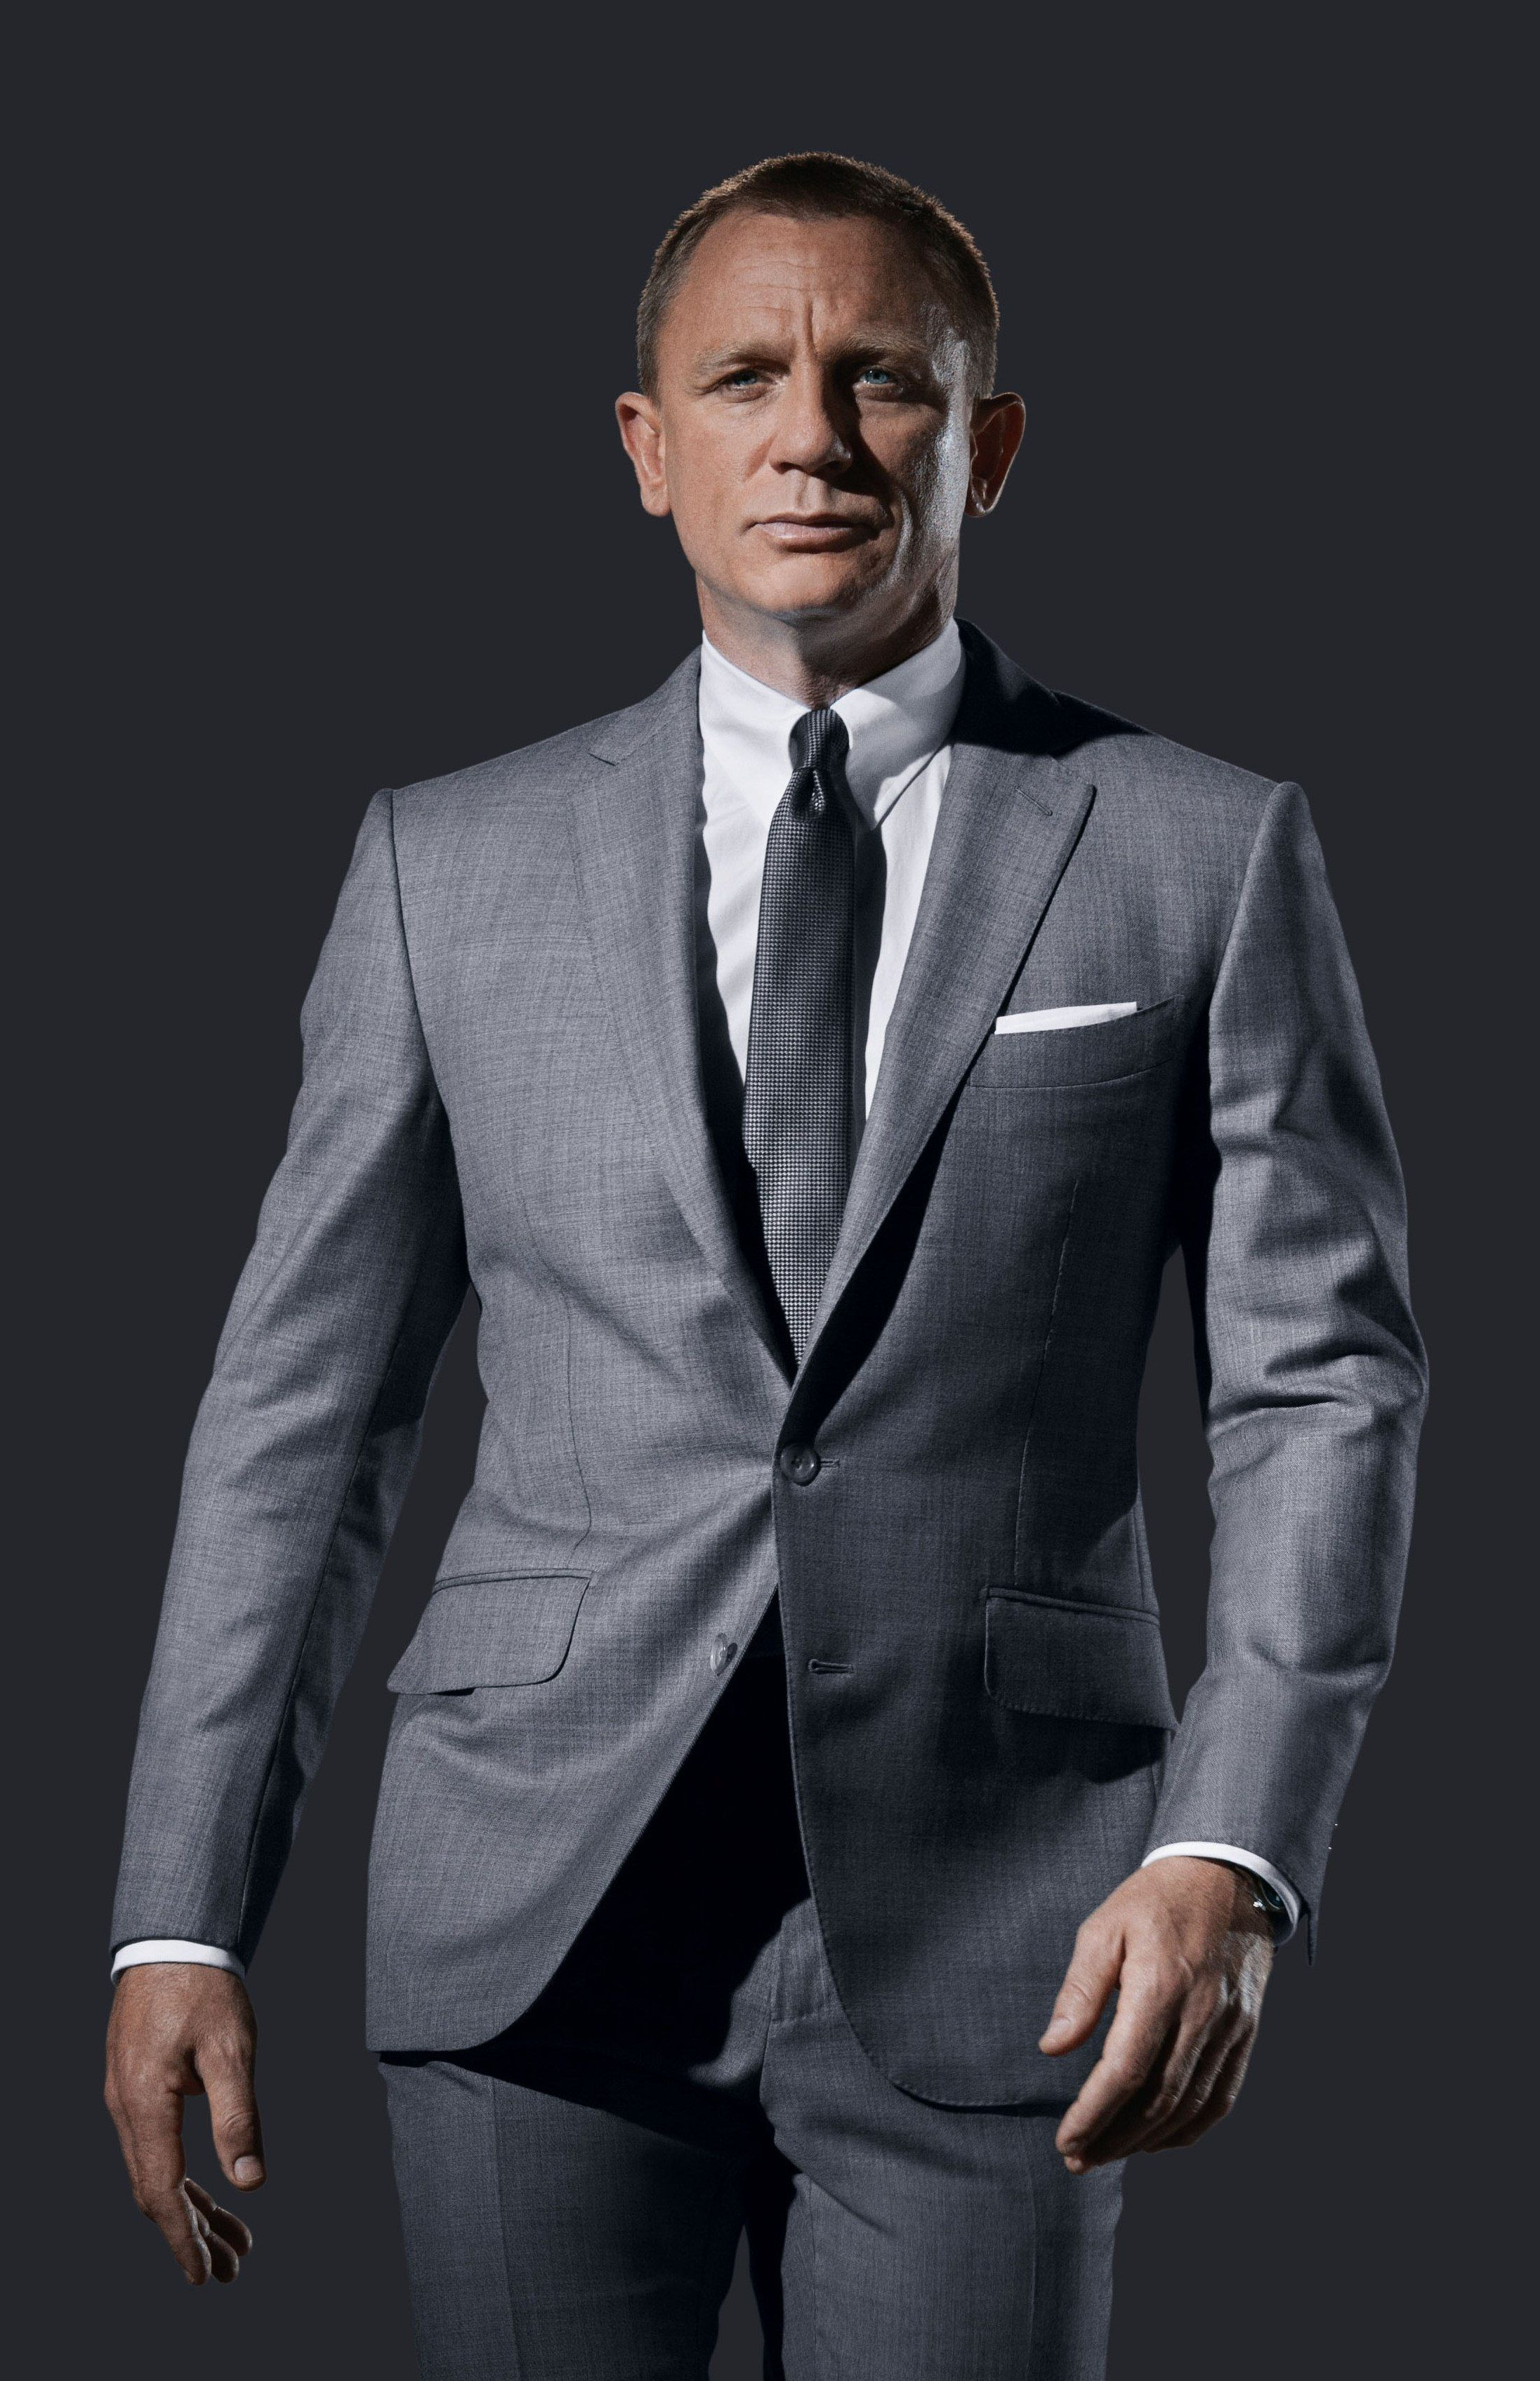 Daniel Craig Skyfall Suit I Love The Suit And The Man In It